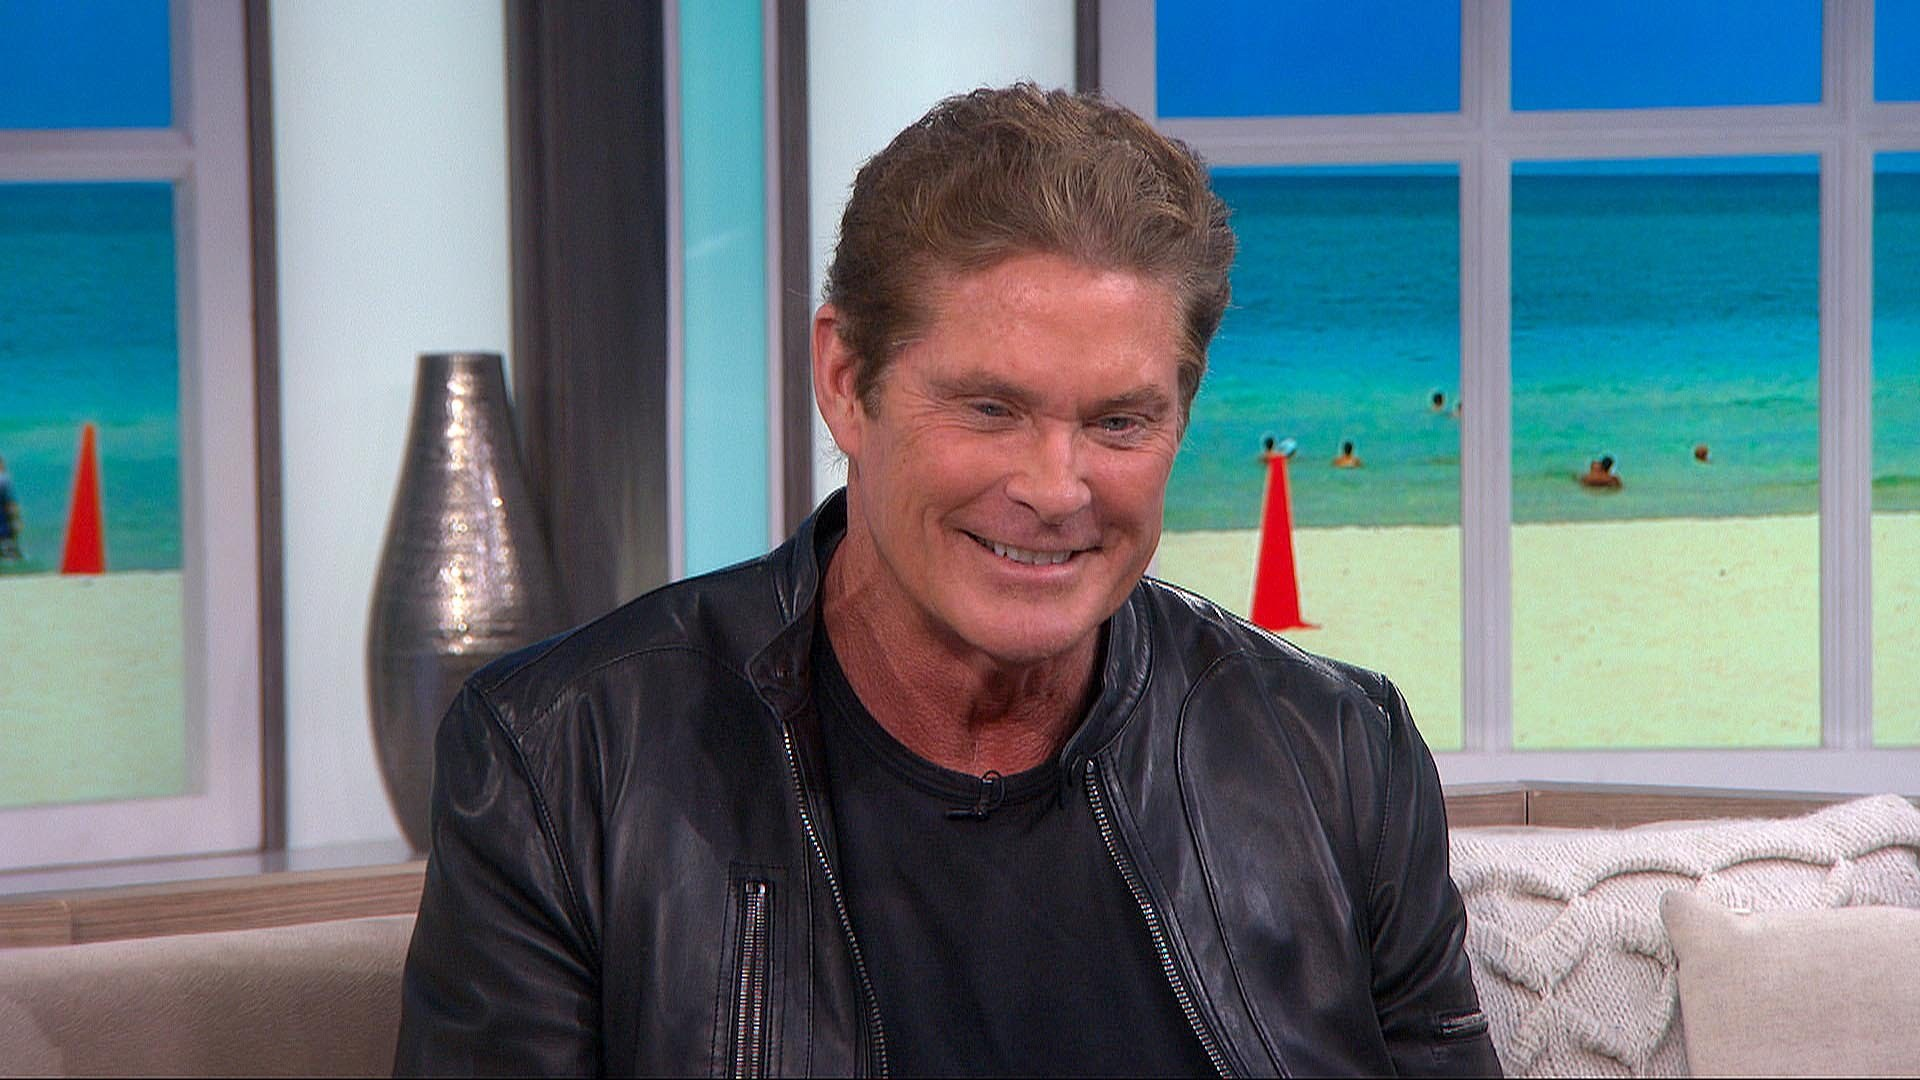 David Hasselhoff Hd Background